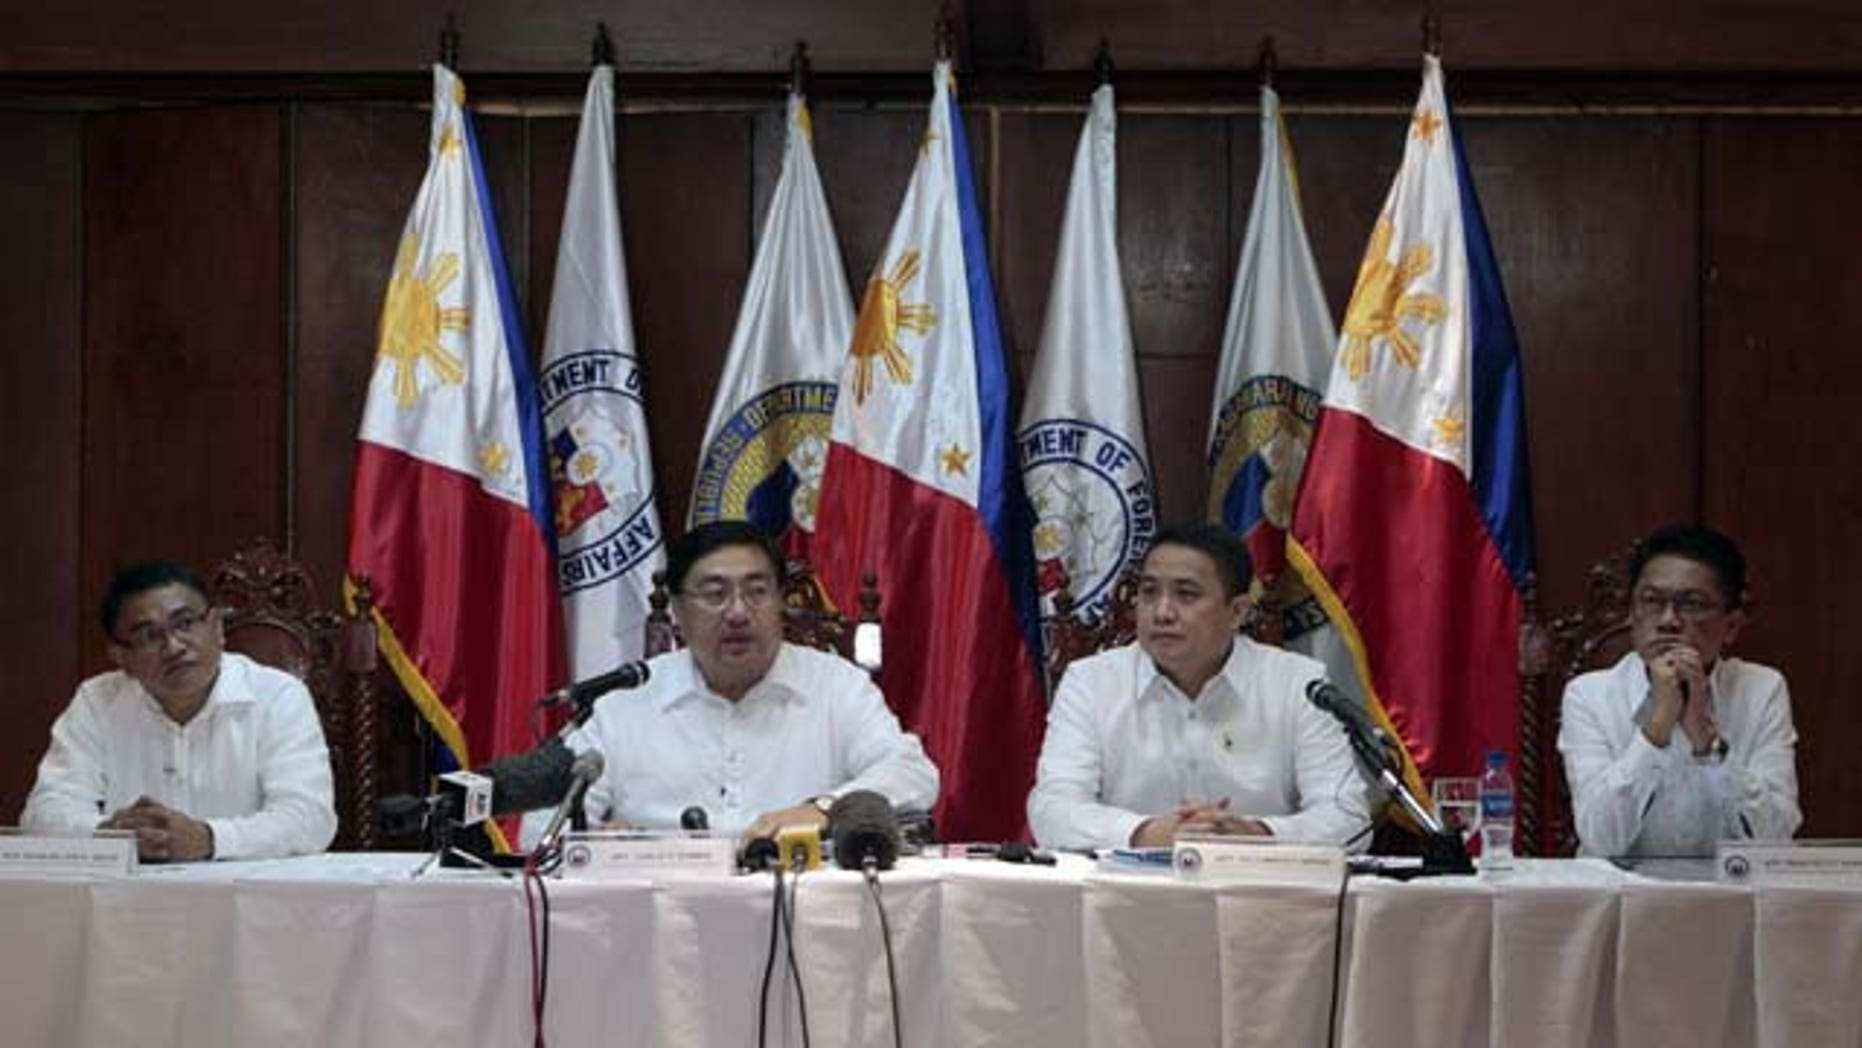 August 12, 2013: Philippine chief government negotiator Carlos Sorreta, second from left, answers questions from reporters beside fellow negotiators, at Camp Aguinaldo military headquarters in suburban Quezon City, north of Manila.